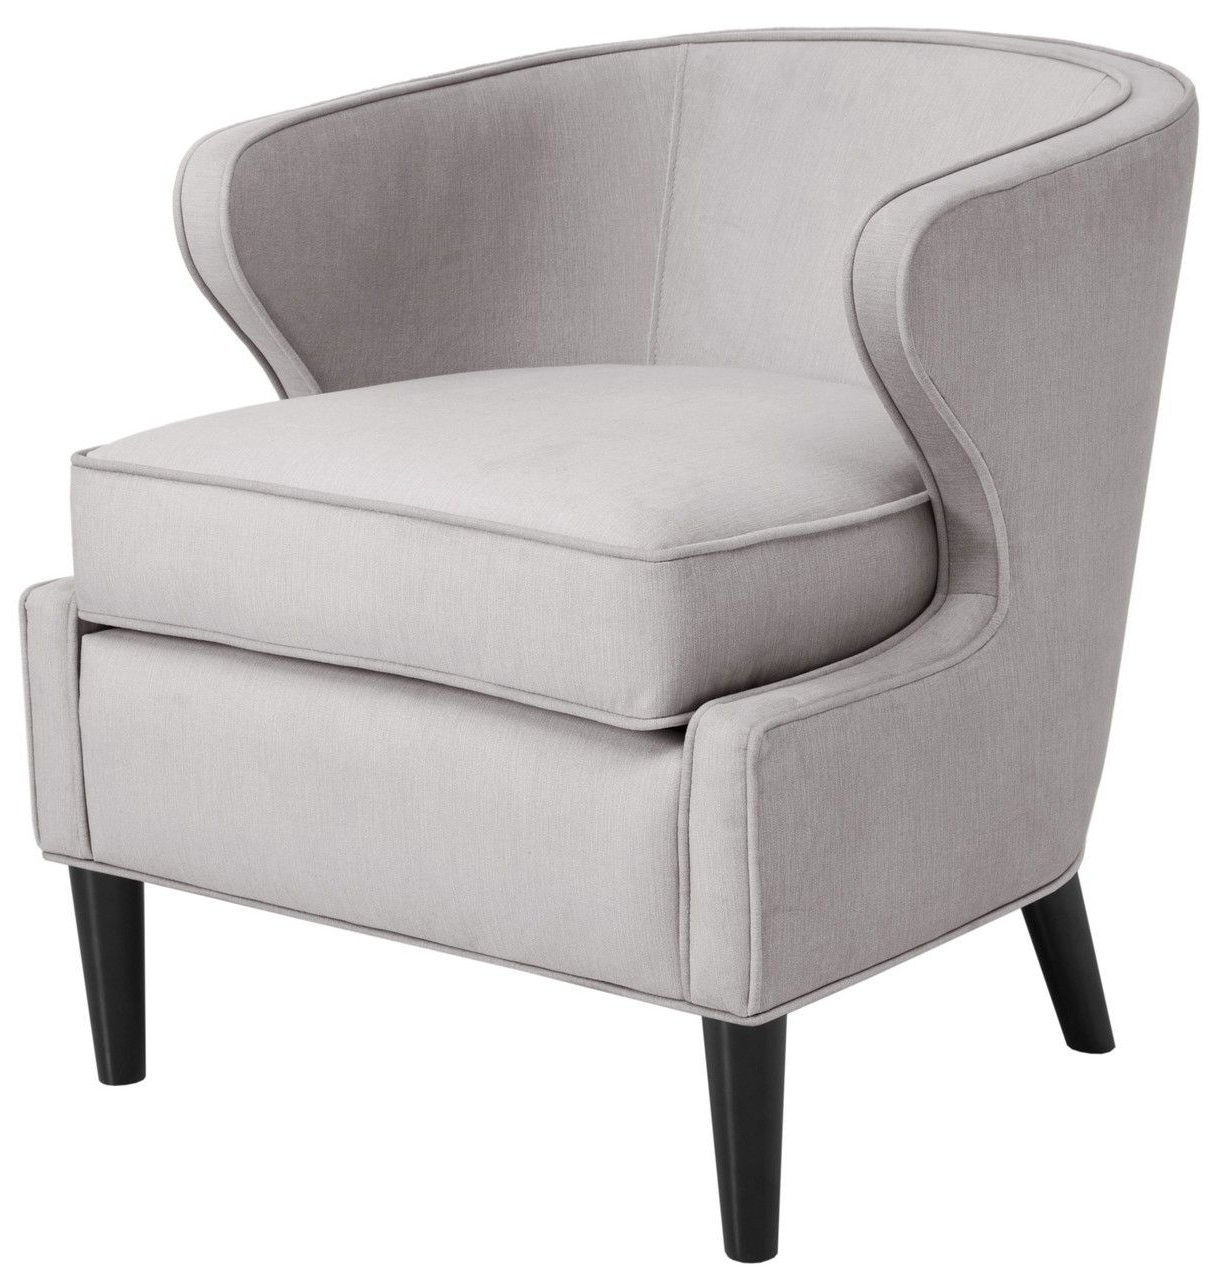 Fabric Accent Chair, Mattress (View 5 of 20)